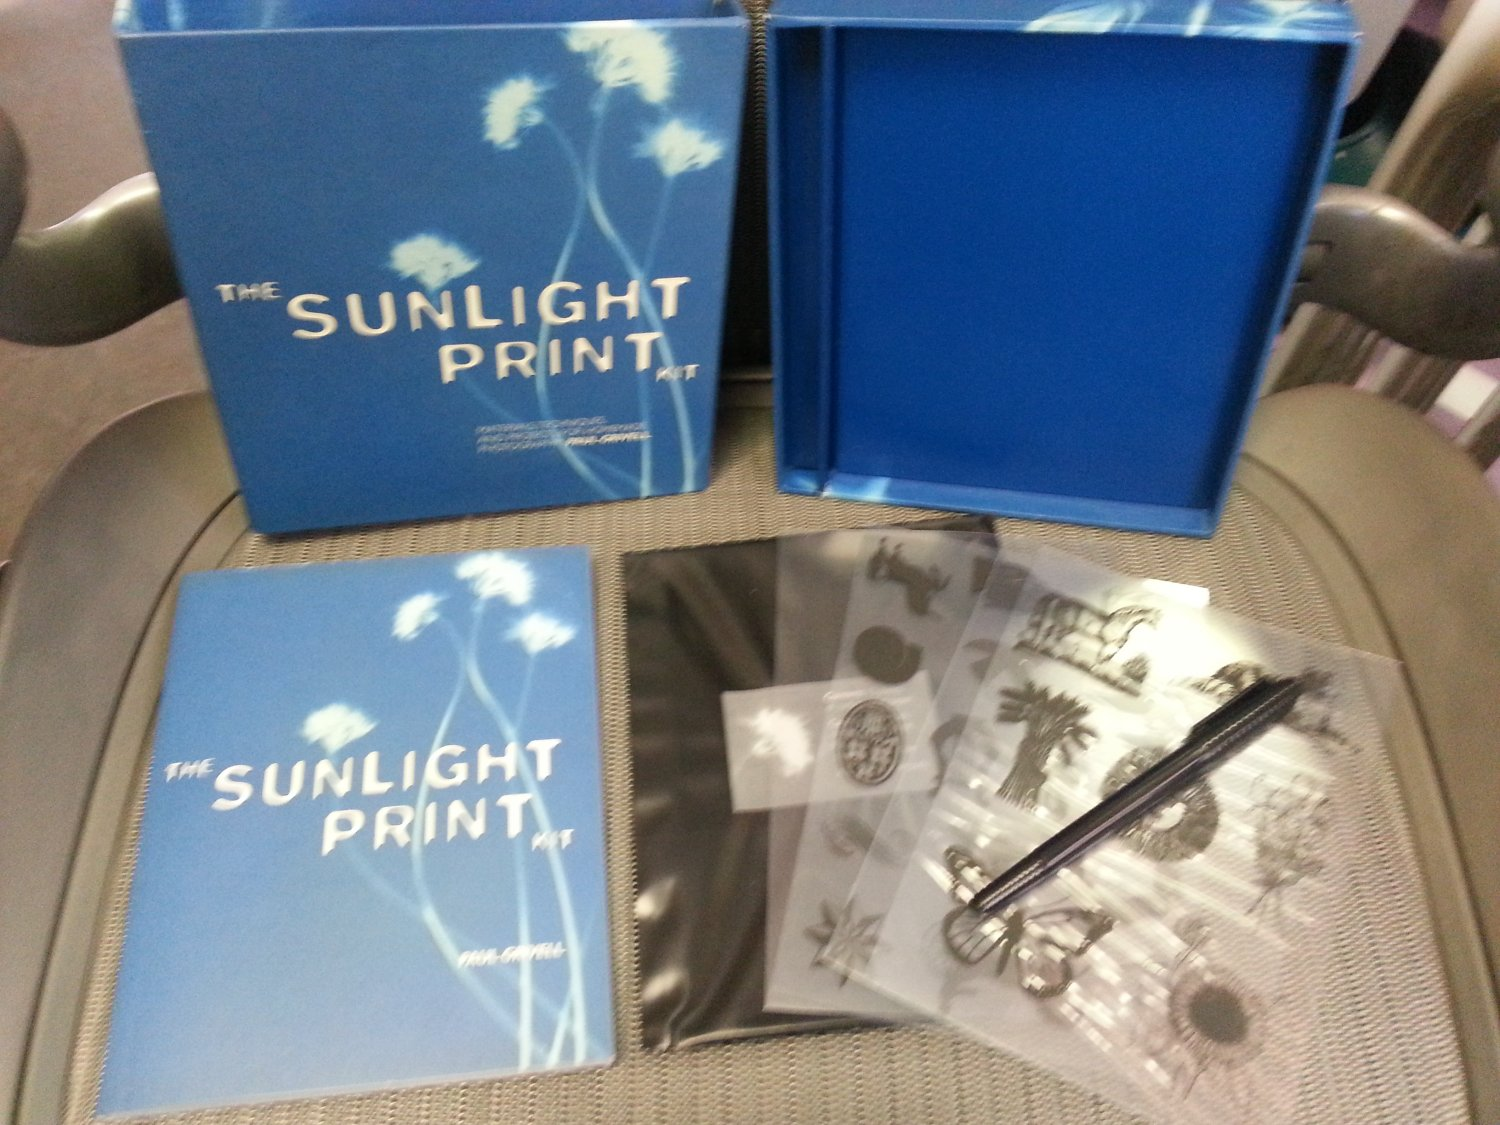 THE SUNLIGHT PRINT KIT: MATERIALS,TECHNIQUES & PROJECTS ...